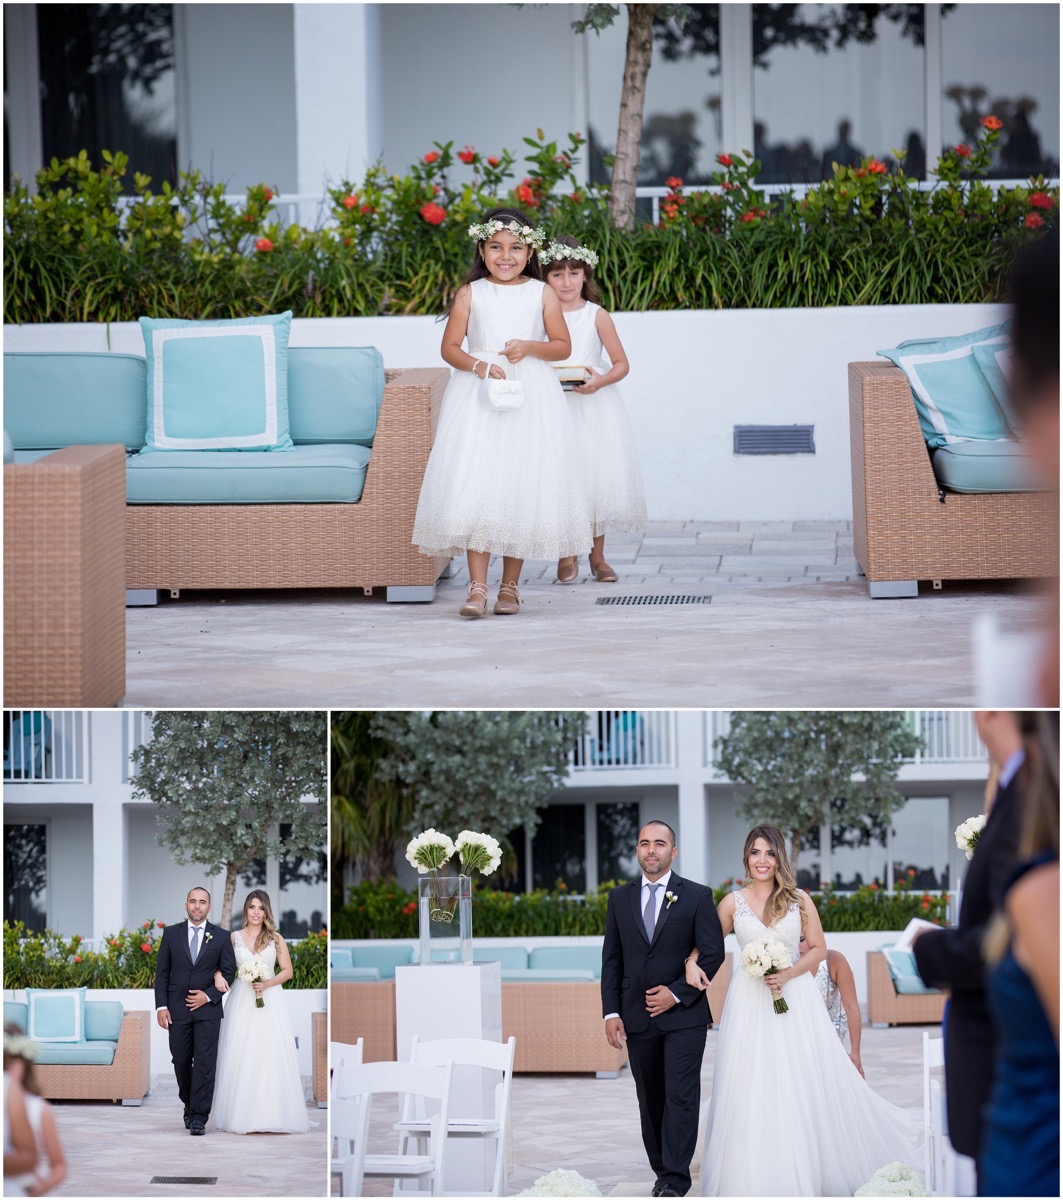 Le Cape Weddings - Miguel and Carolina - Latin Wedding in Florida  -5975_LuxuryDestinationPhotographer.jpg